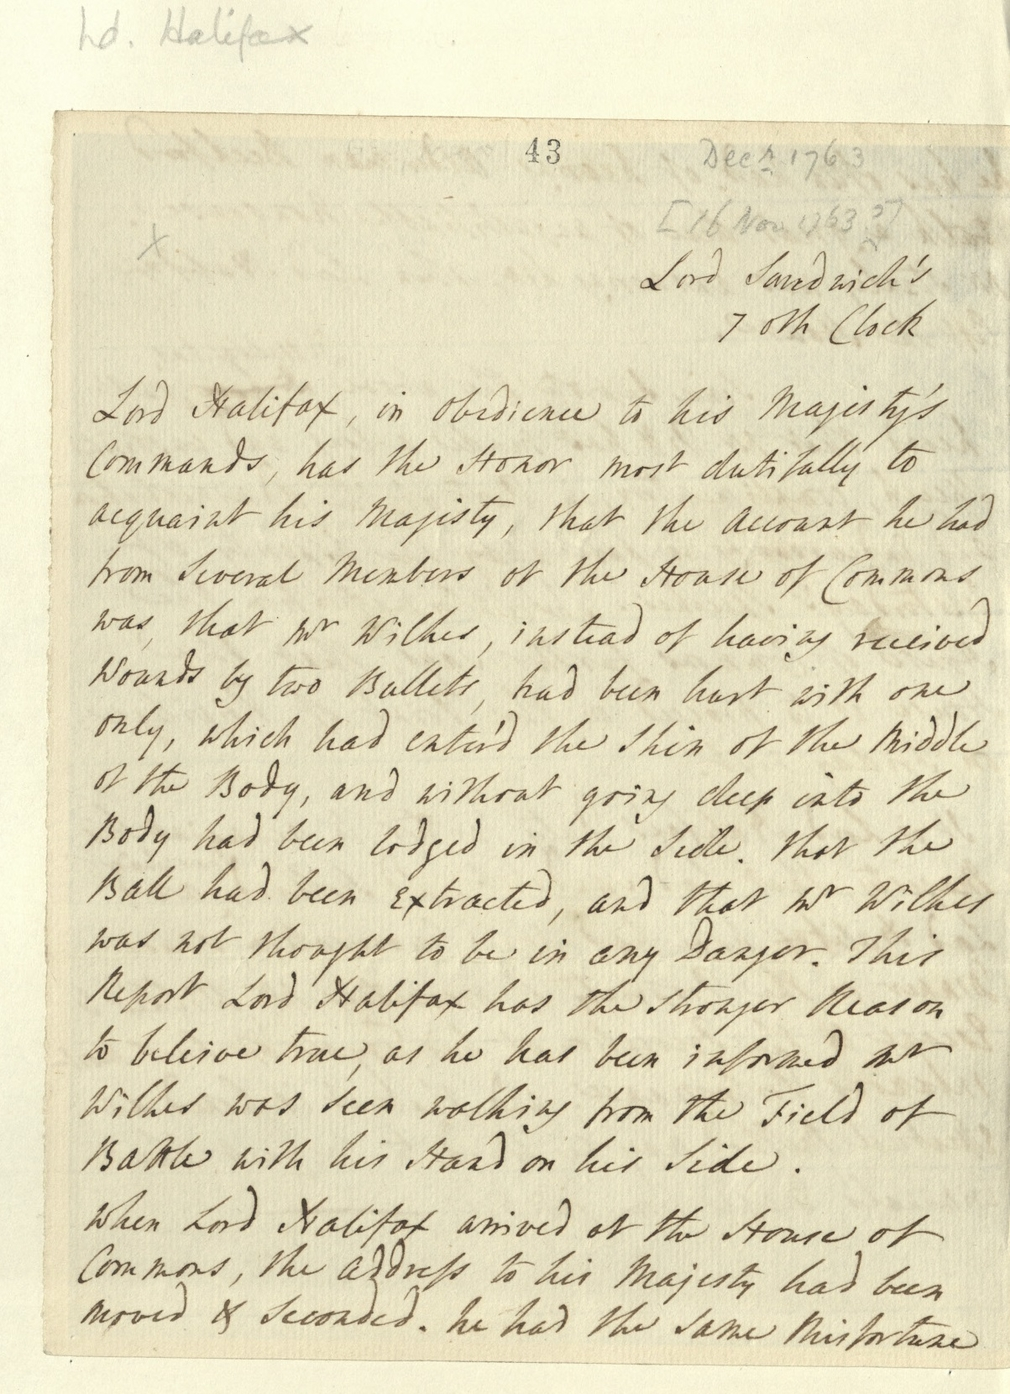 Letter from Lord Halifax to George III about John Wilkes